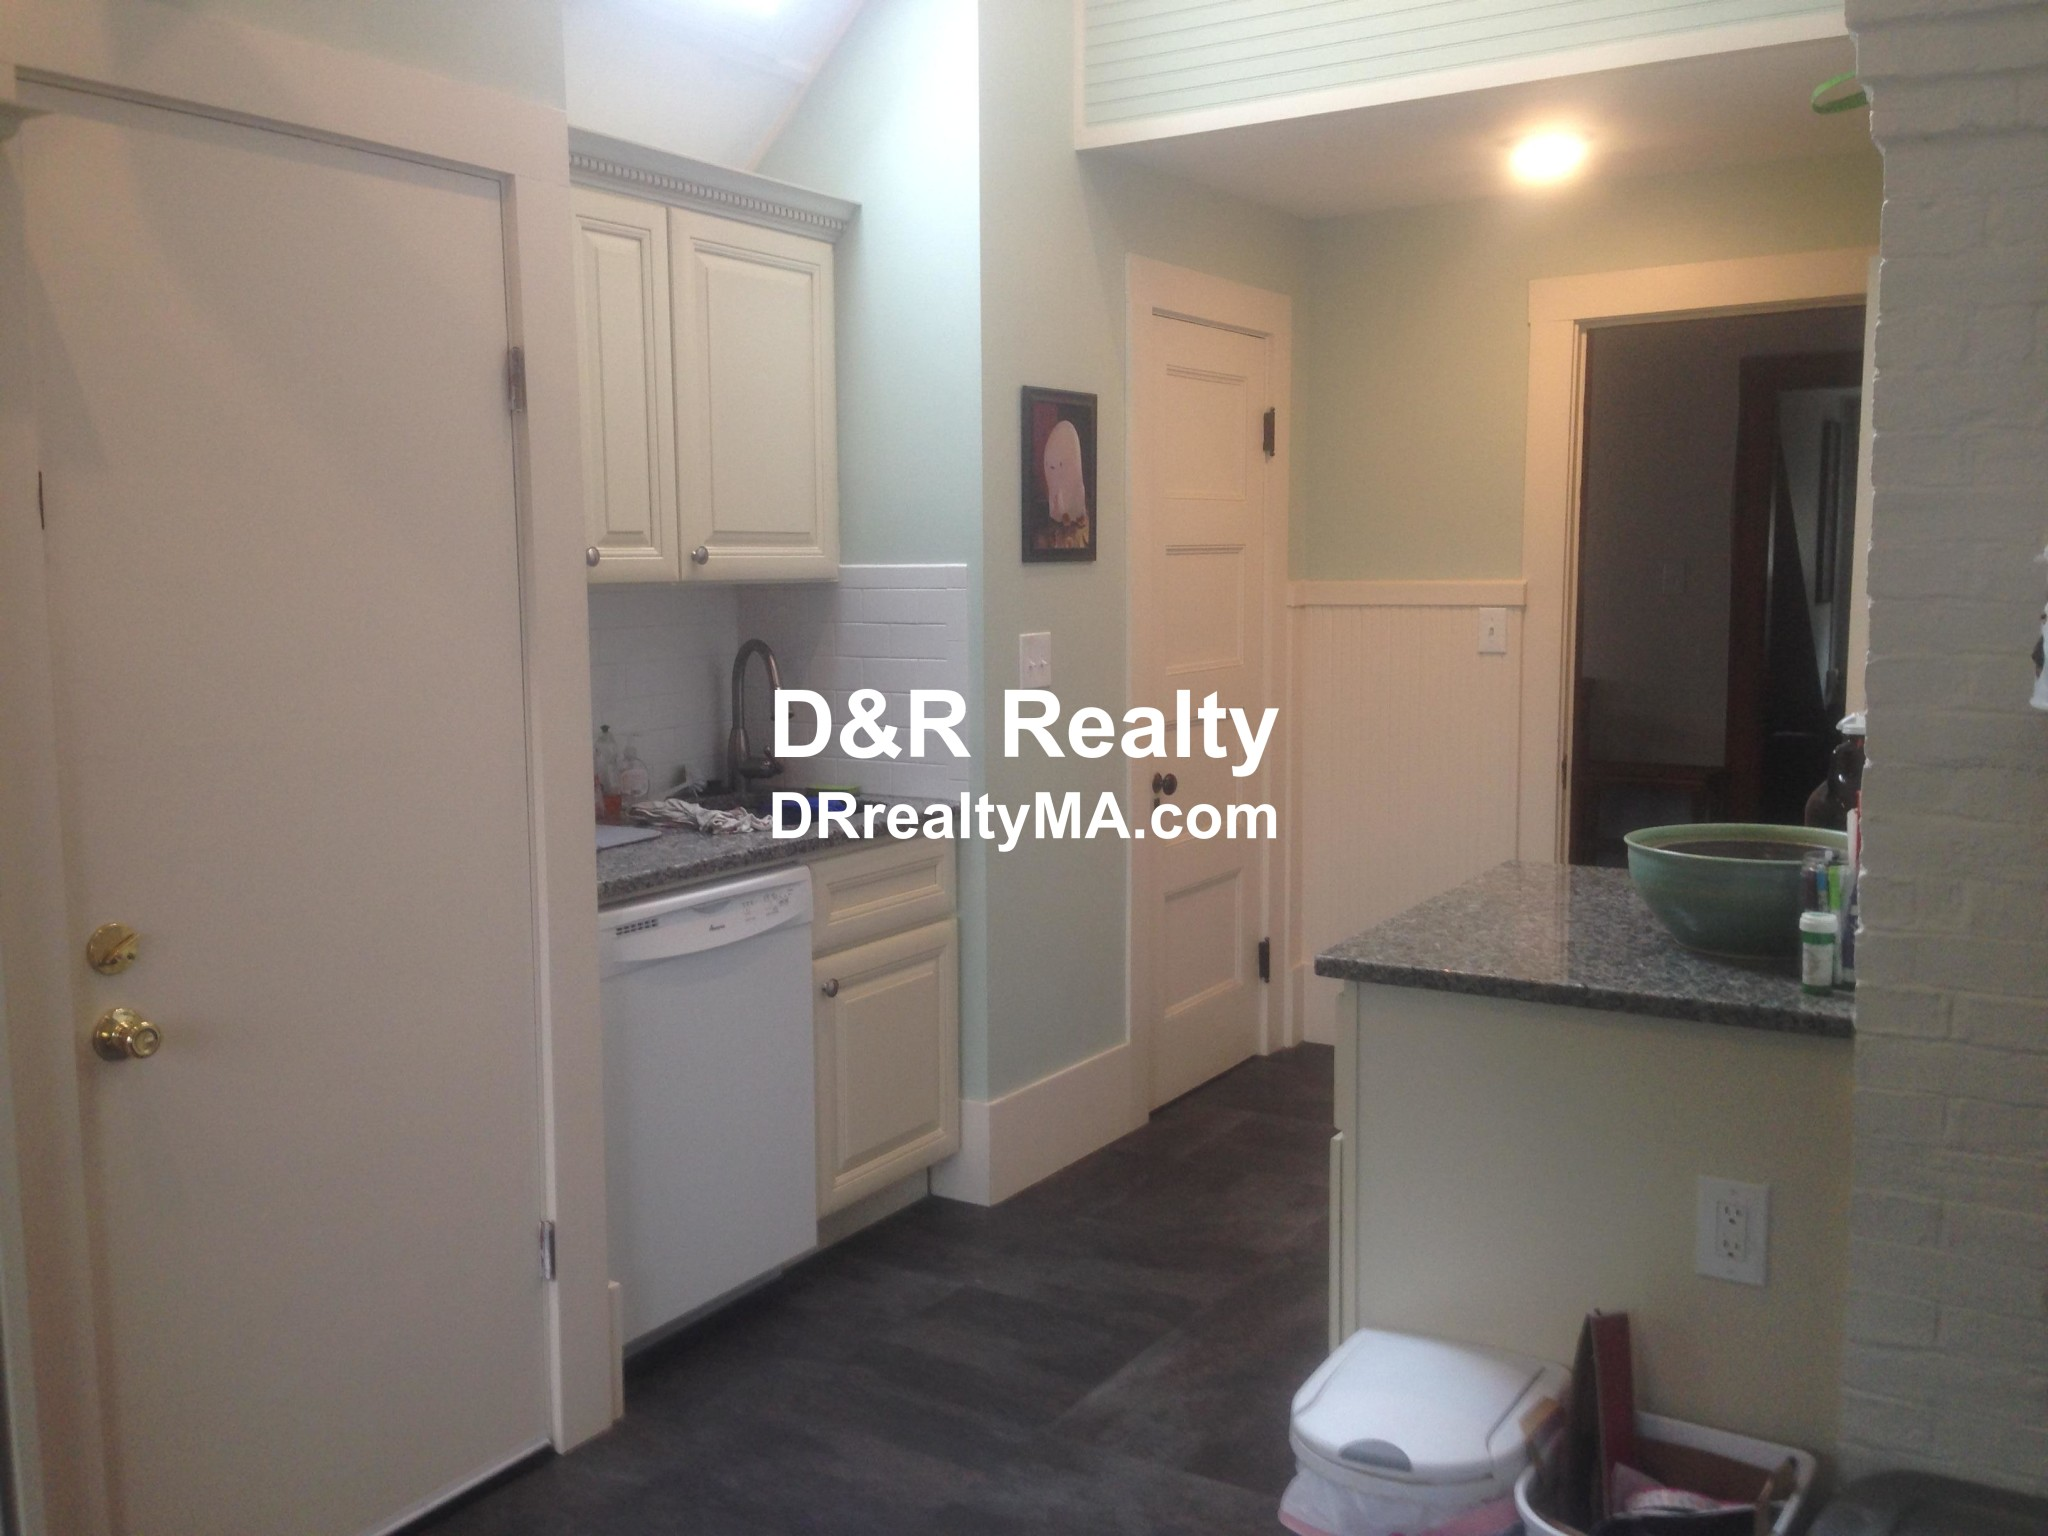 1 Bed, 1 Bath apartment in Somerville for $2,300